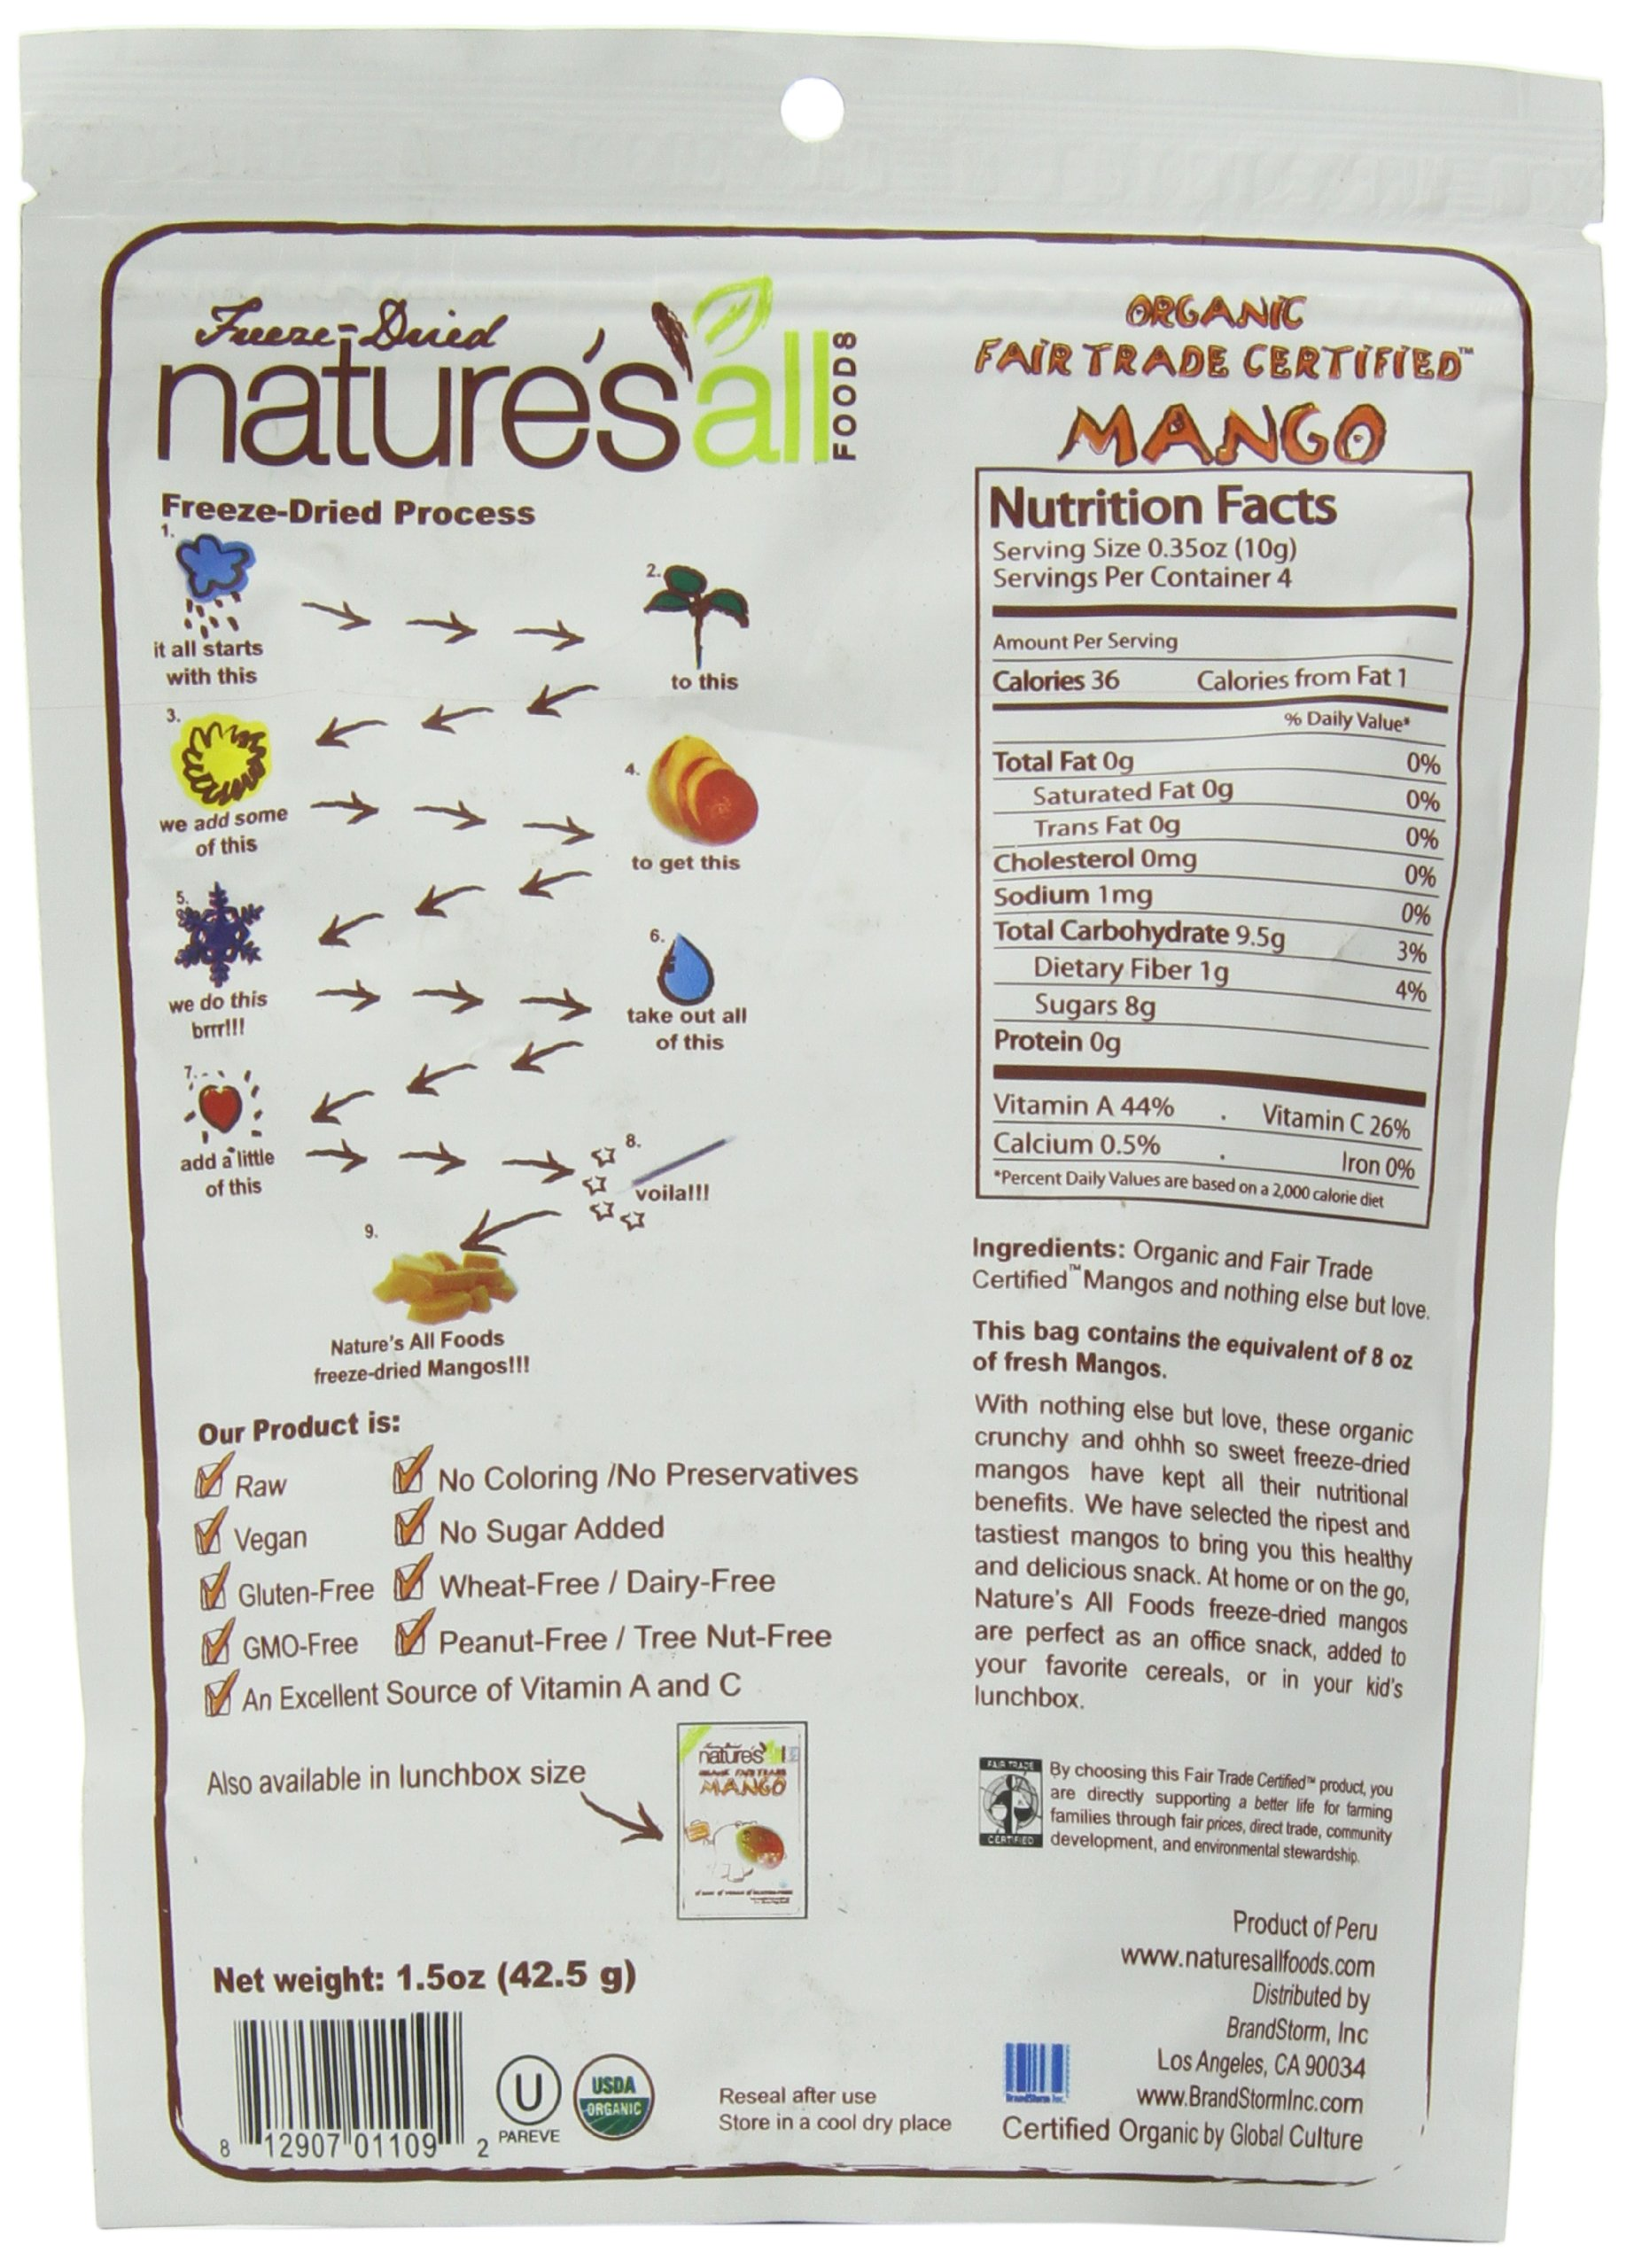 Nature's All Foods Organic Freeze-Dried Mango, 1.5 Ounce (Pack of 3) by Natierra (Image #4)